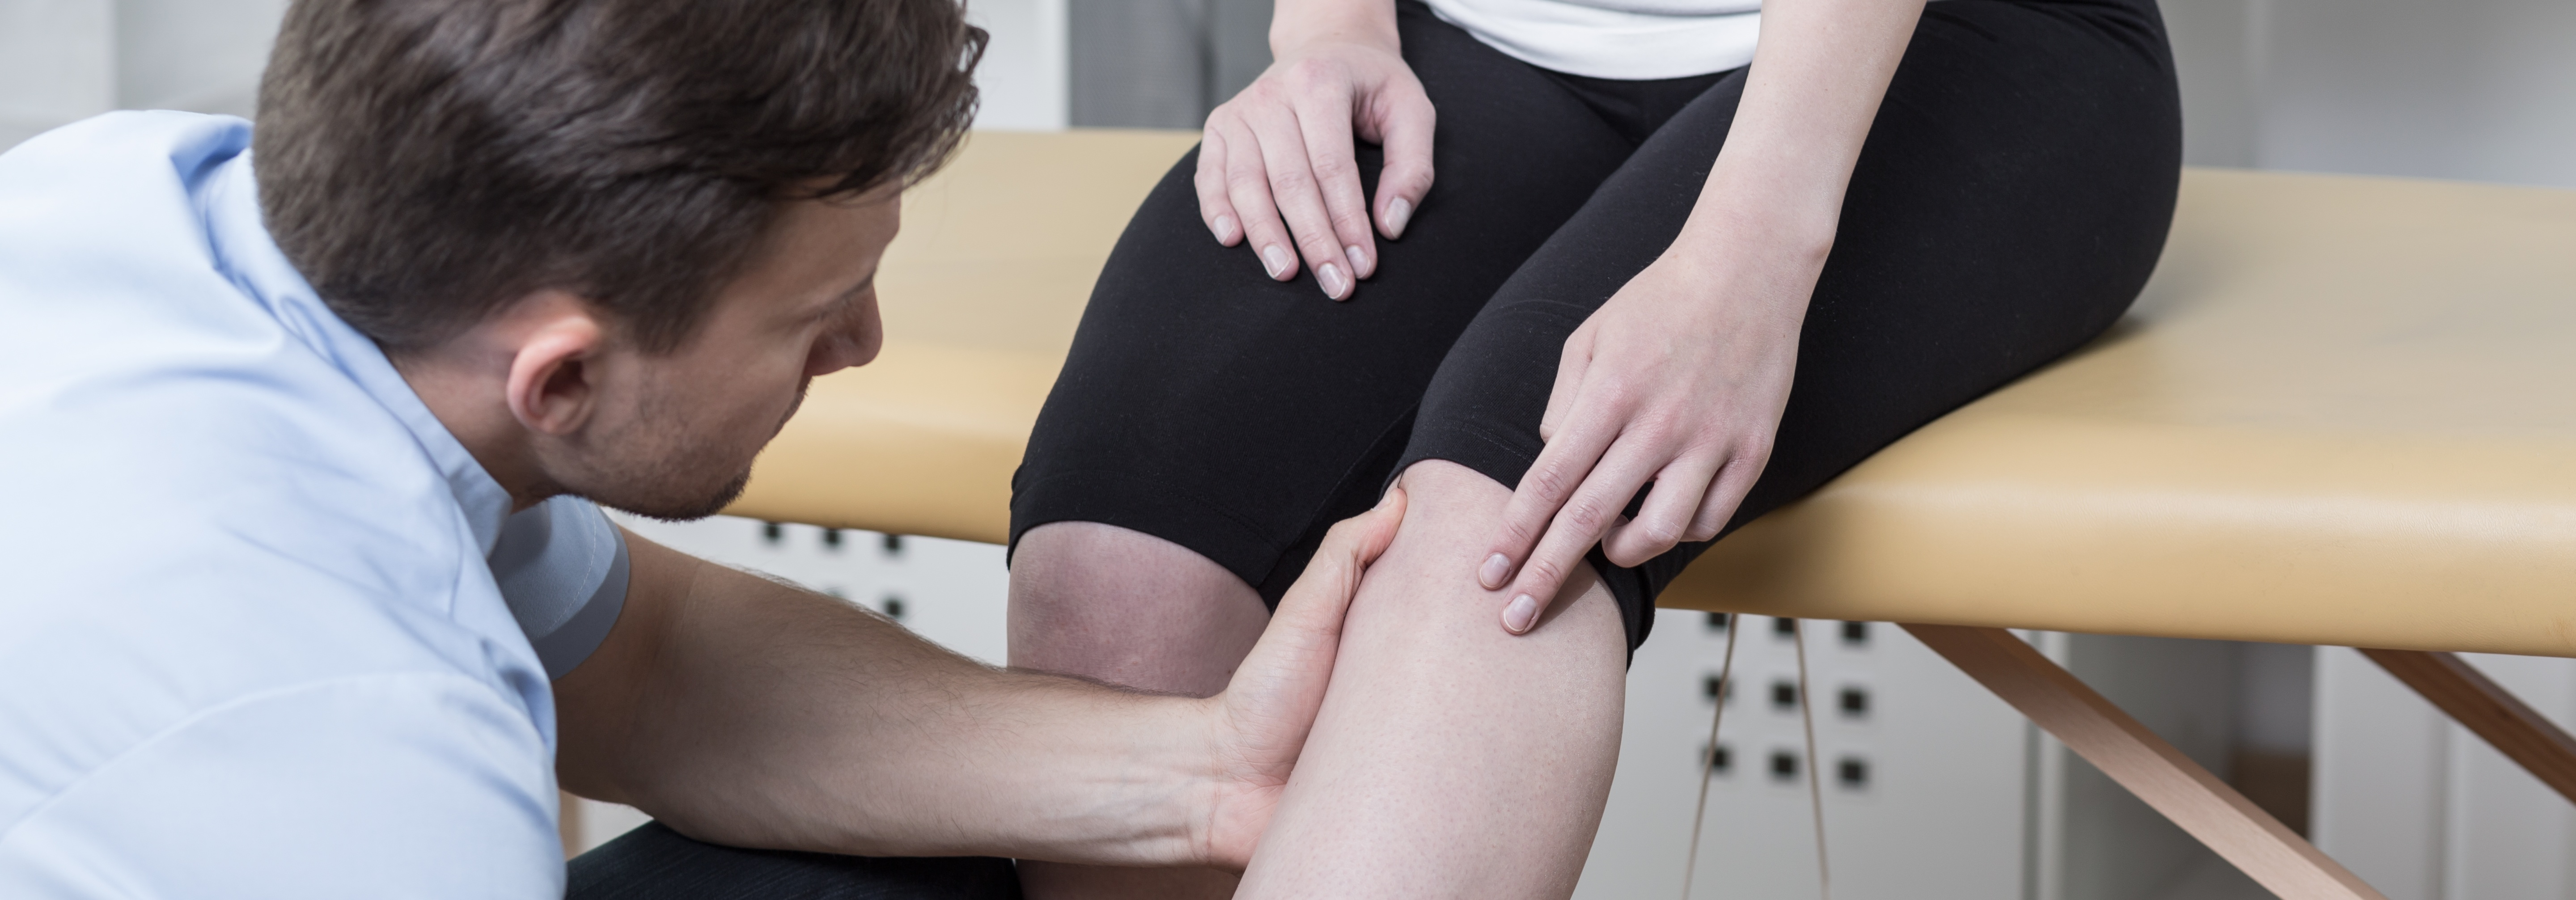 Patient with knee pain